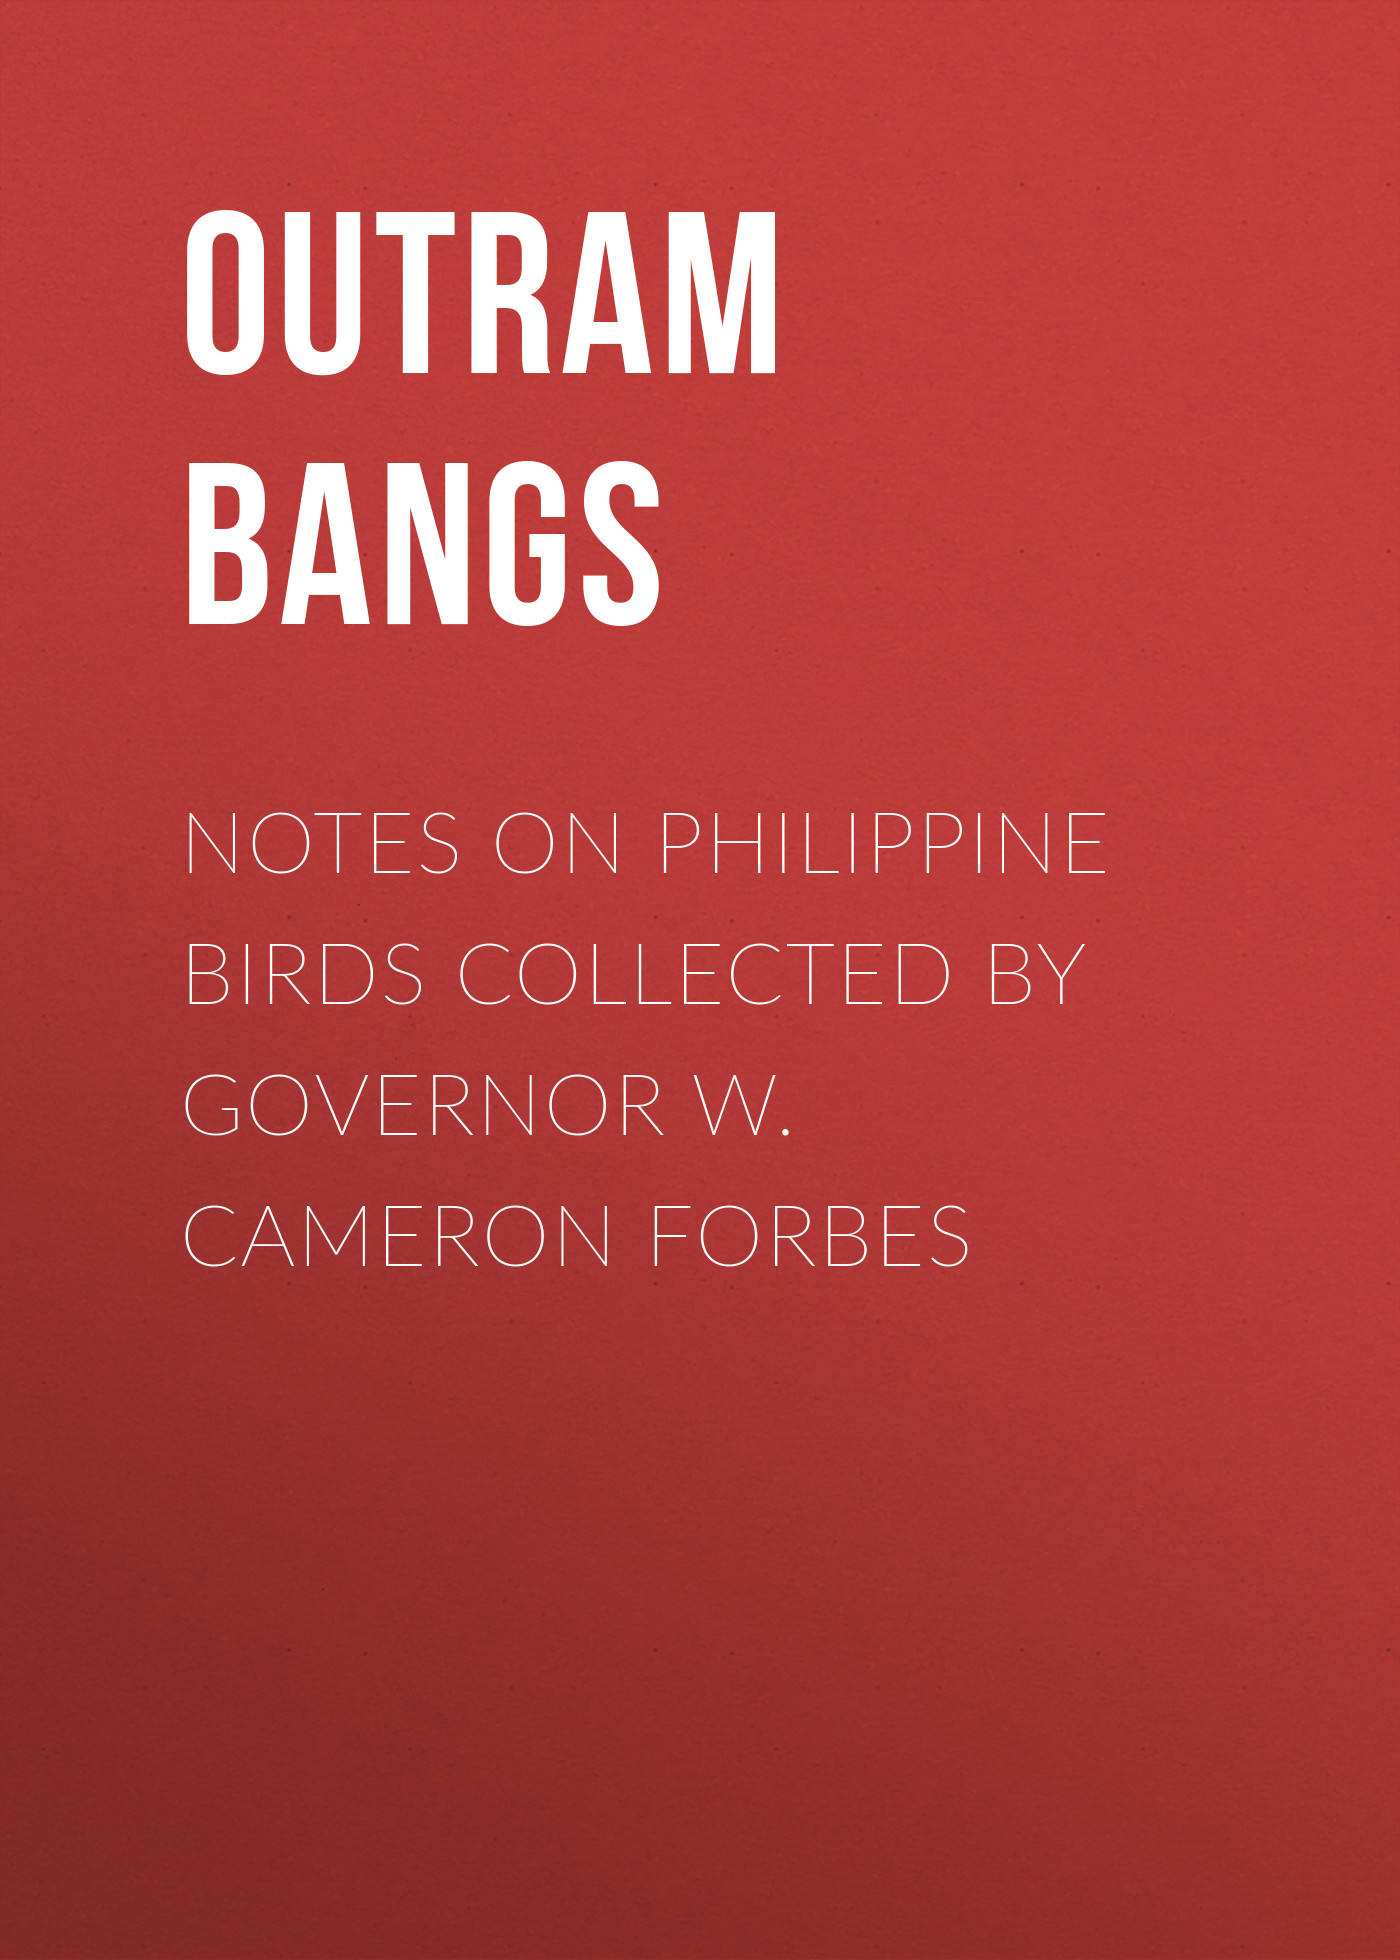 Bangs Outram Notes on Philippine Birds Collected by Governor W. Cameron Forbes notes on camp